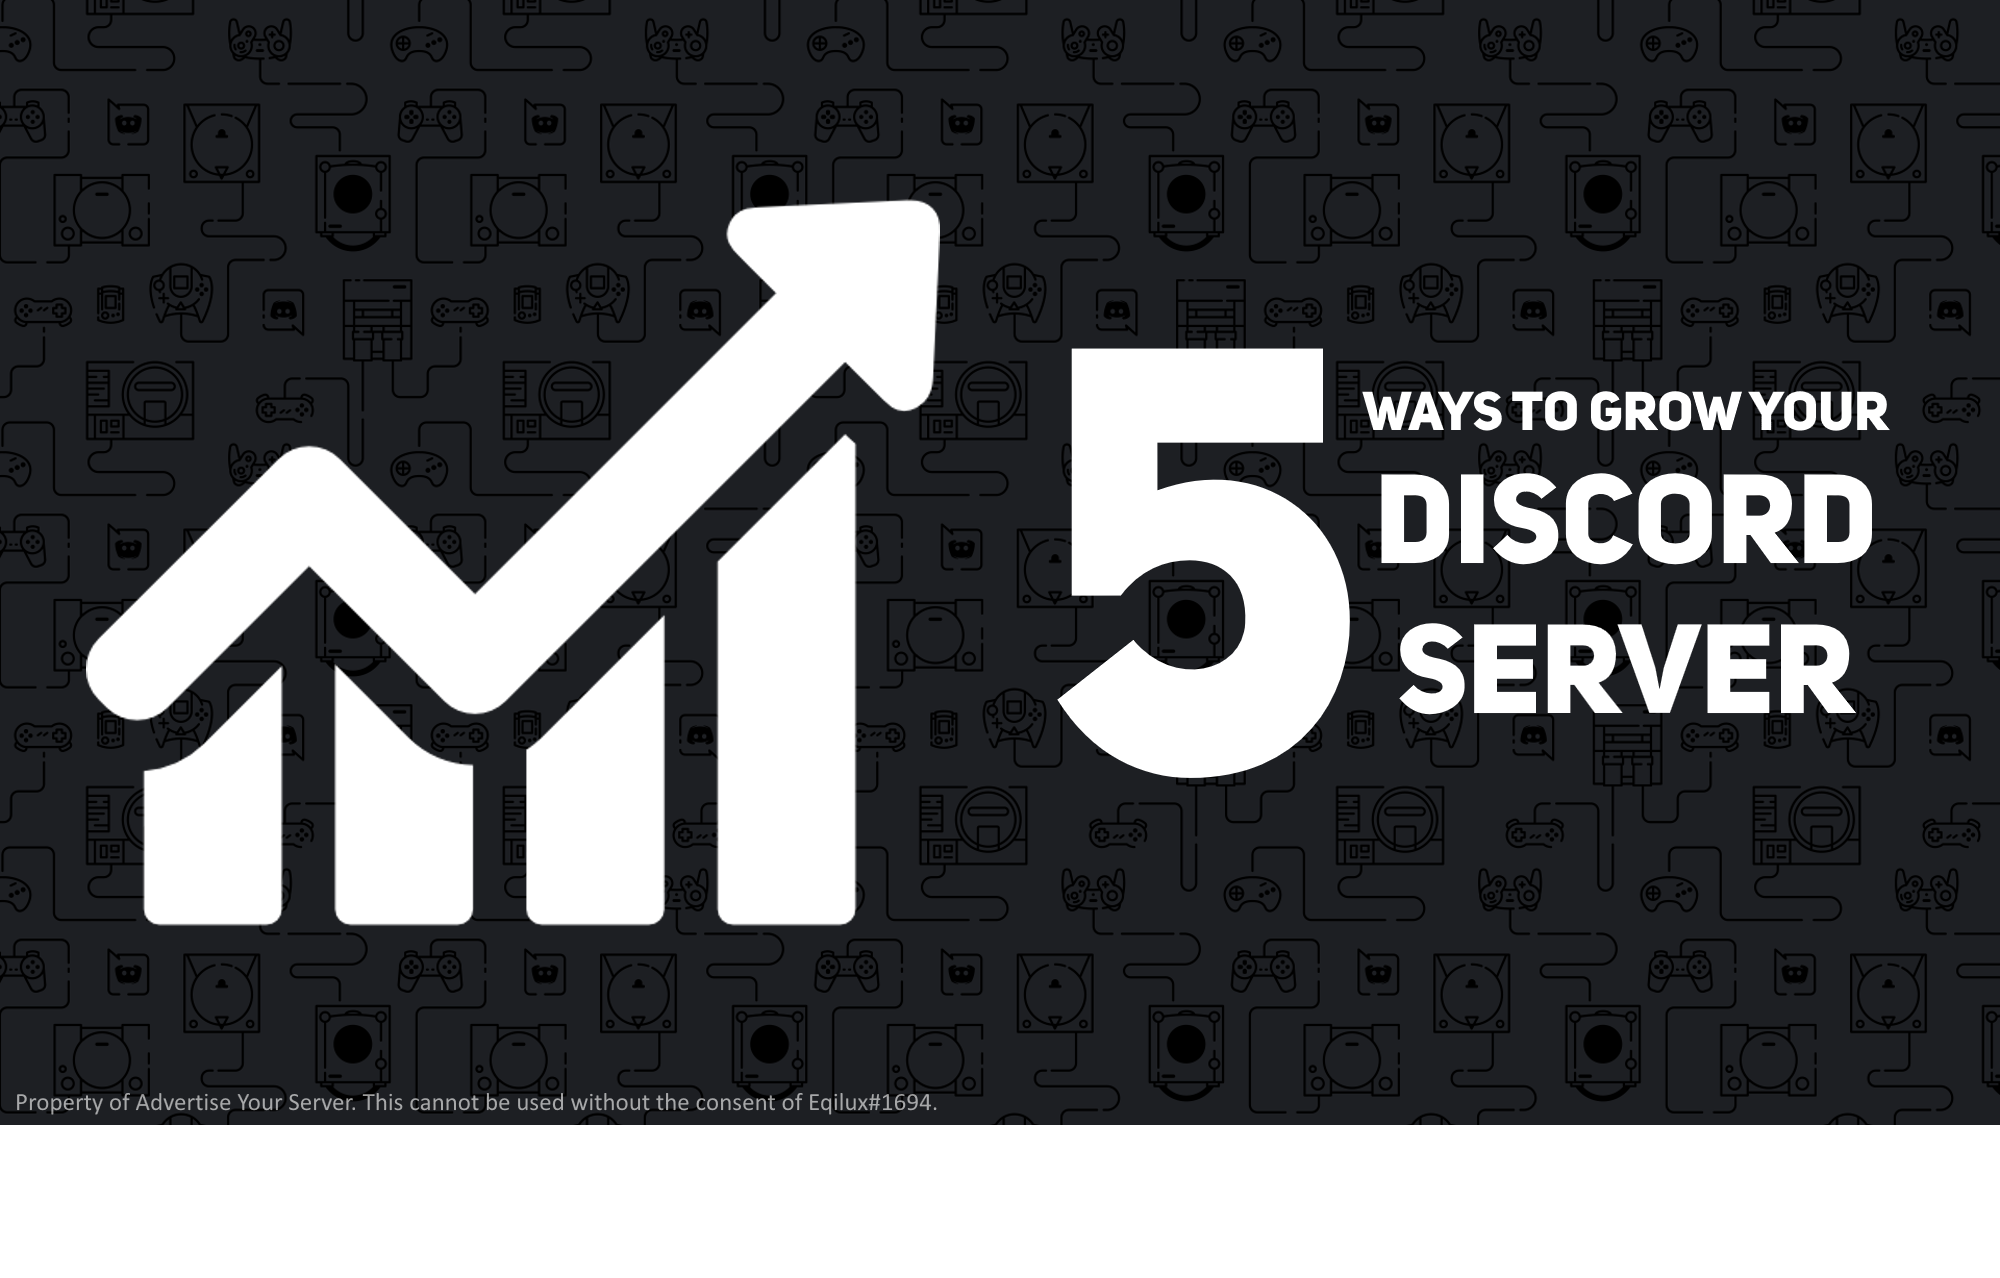 5 Ways to Grow Your Discord Server - Advertise Your Server